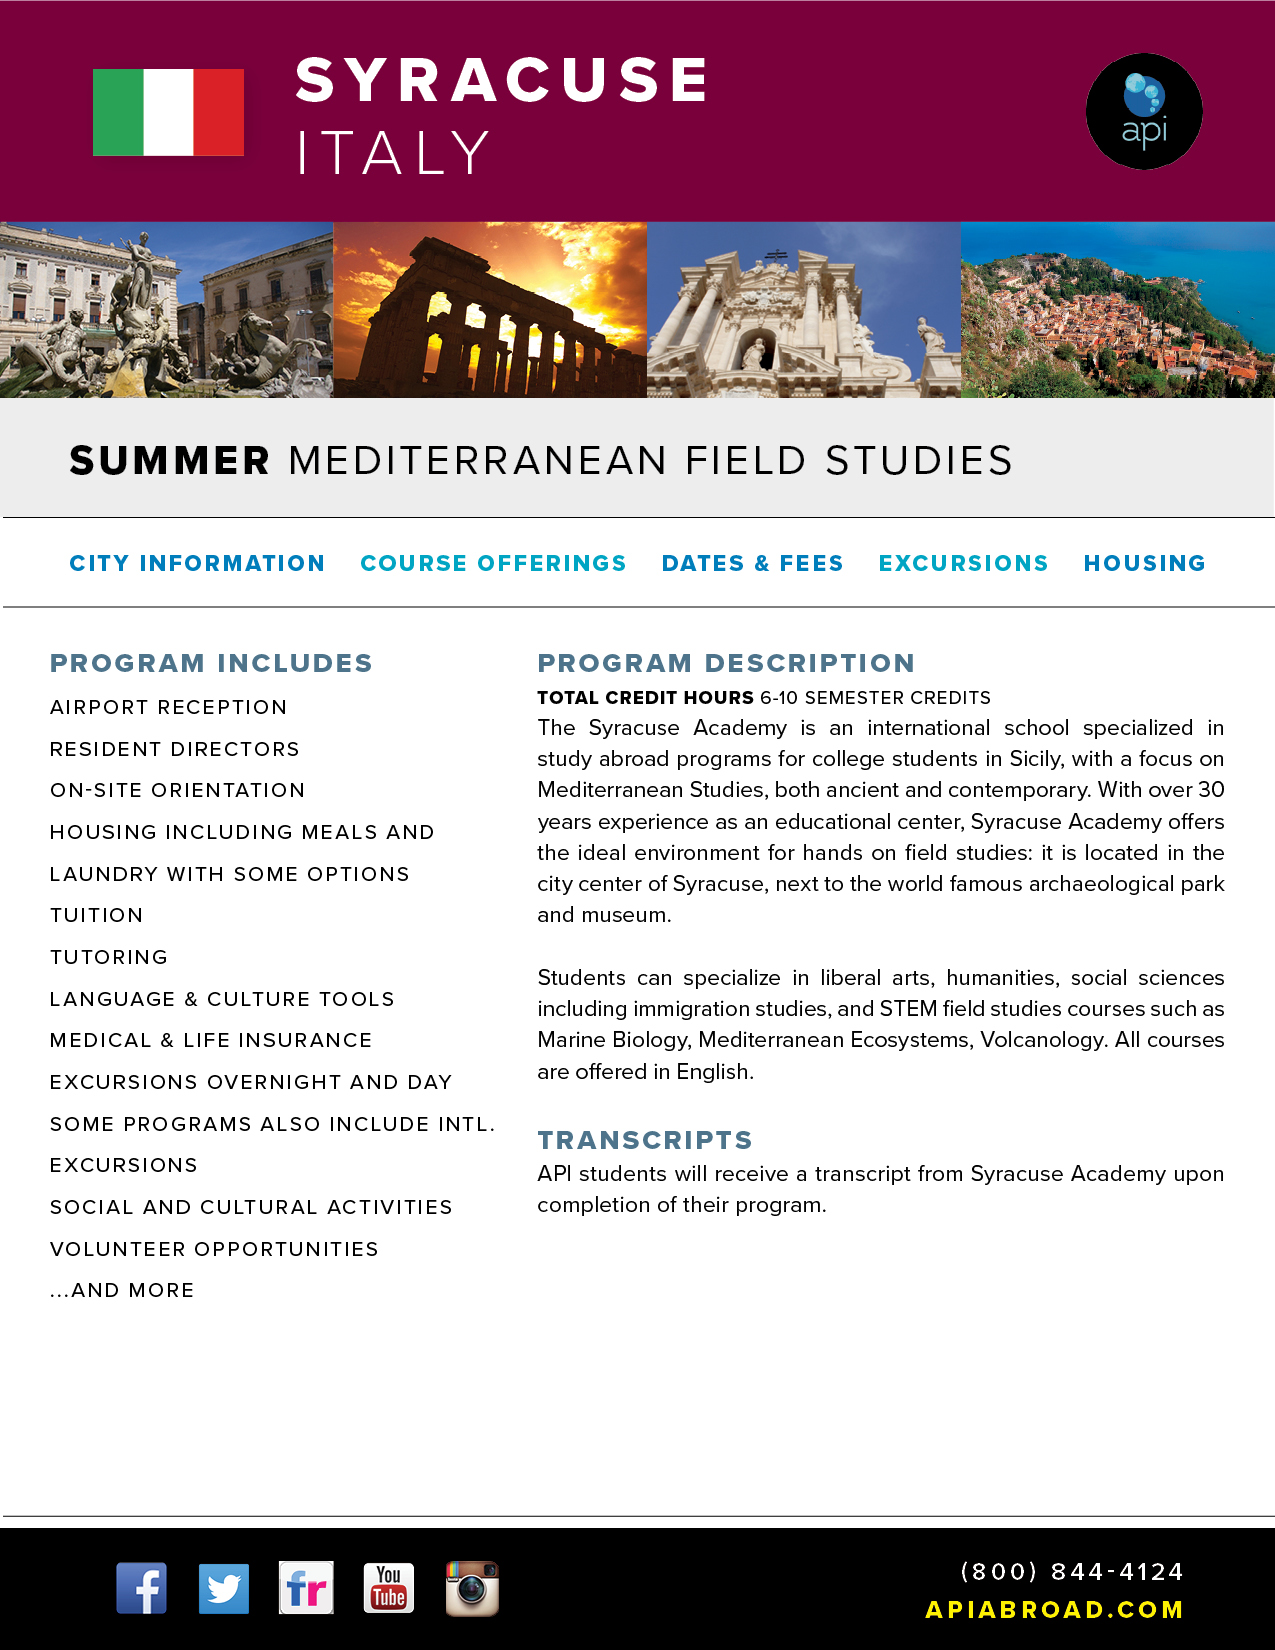 API Study Abroad in Italy